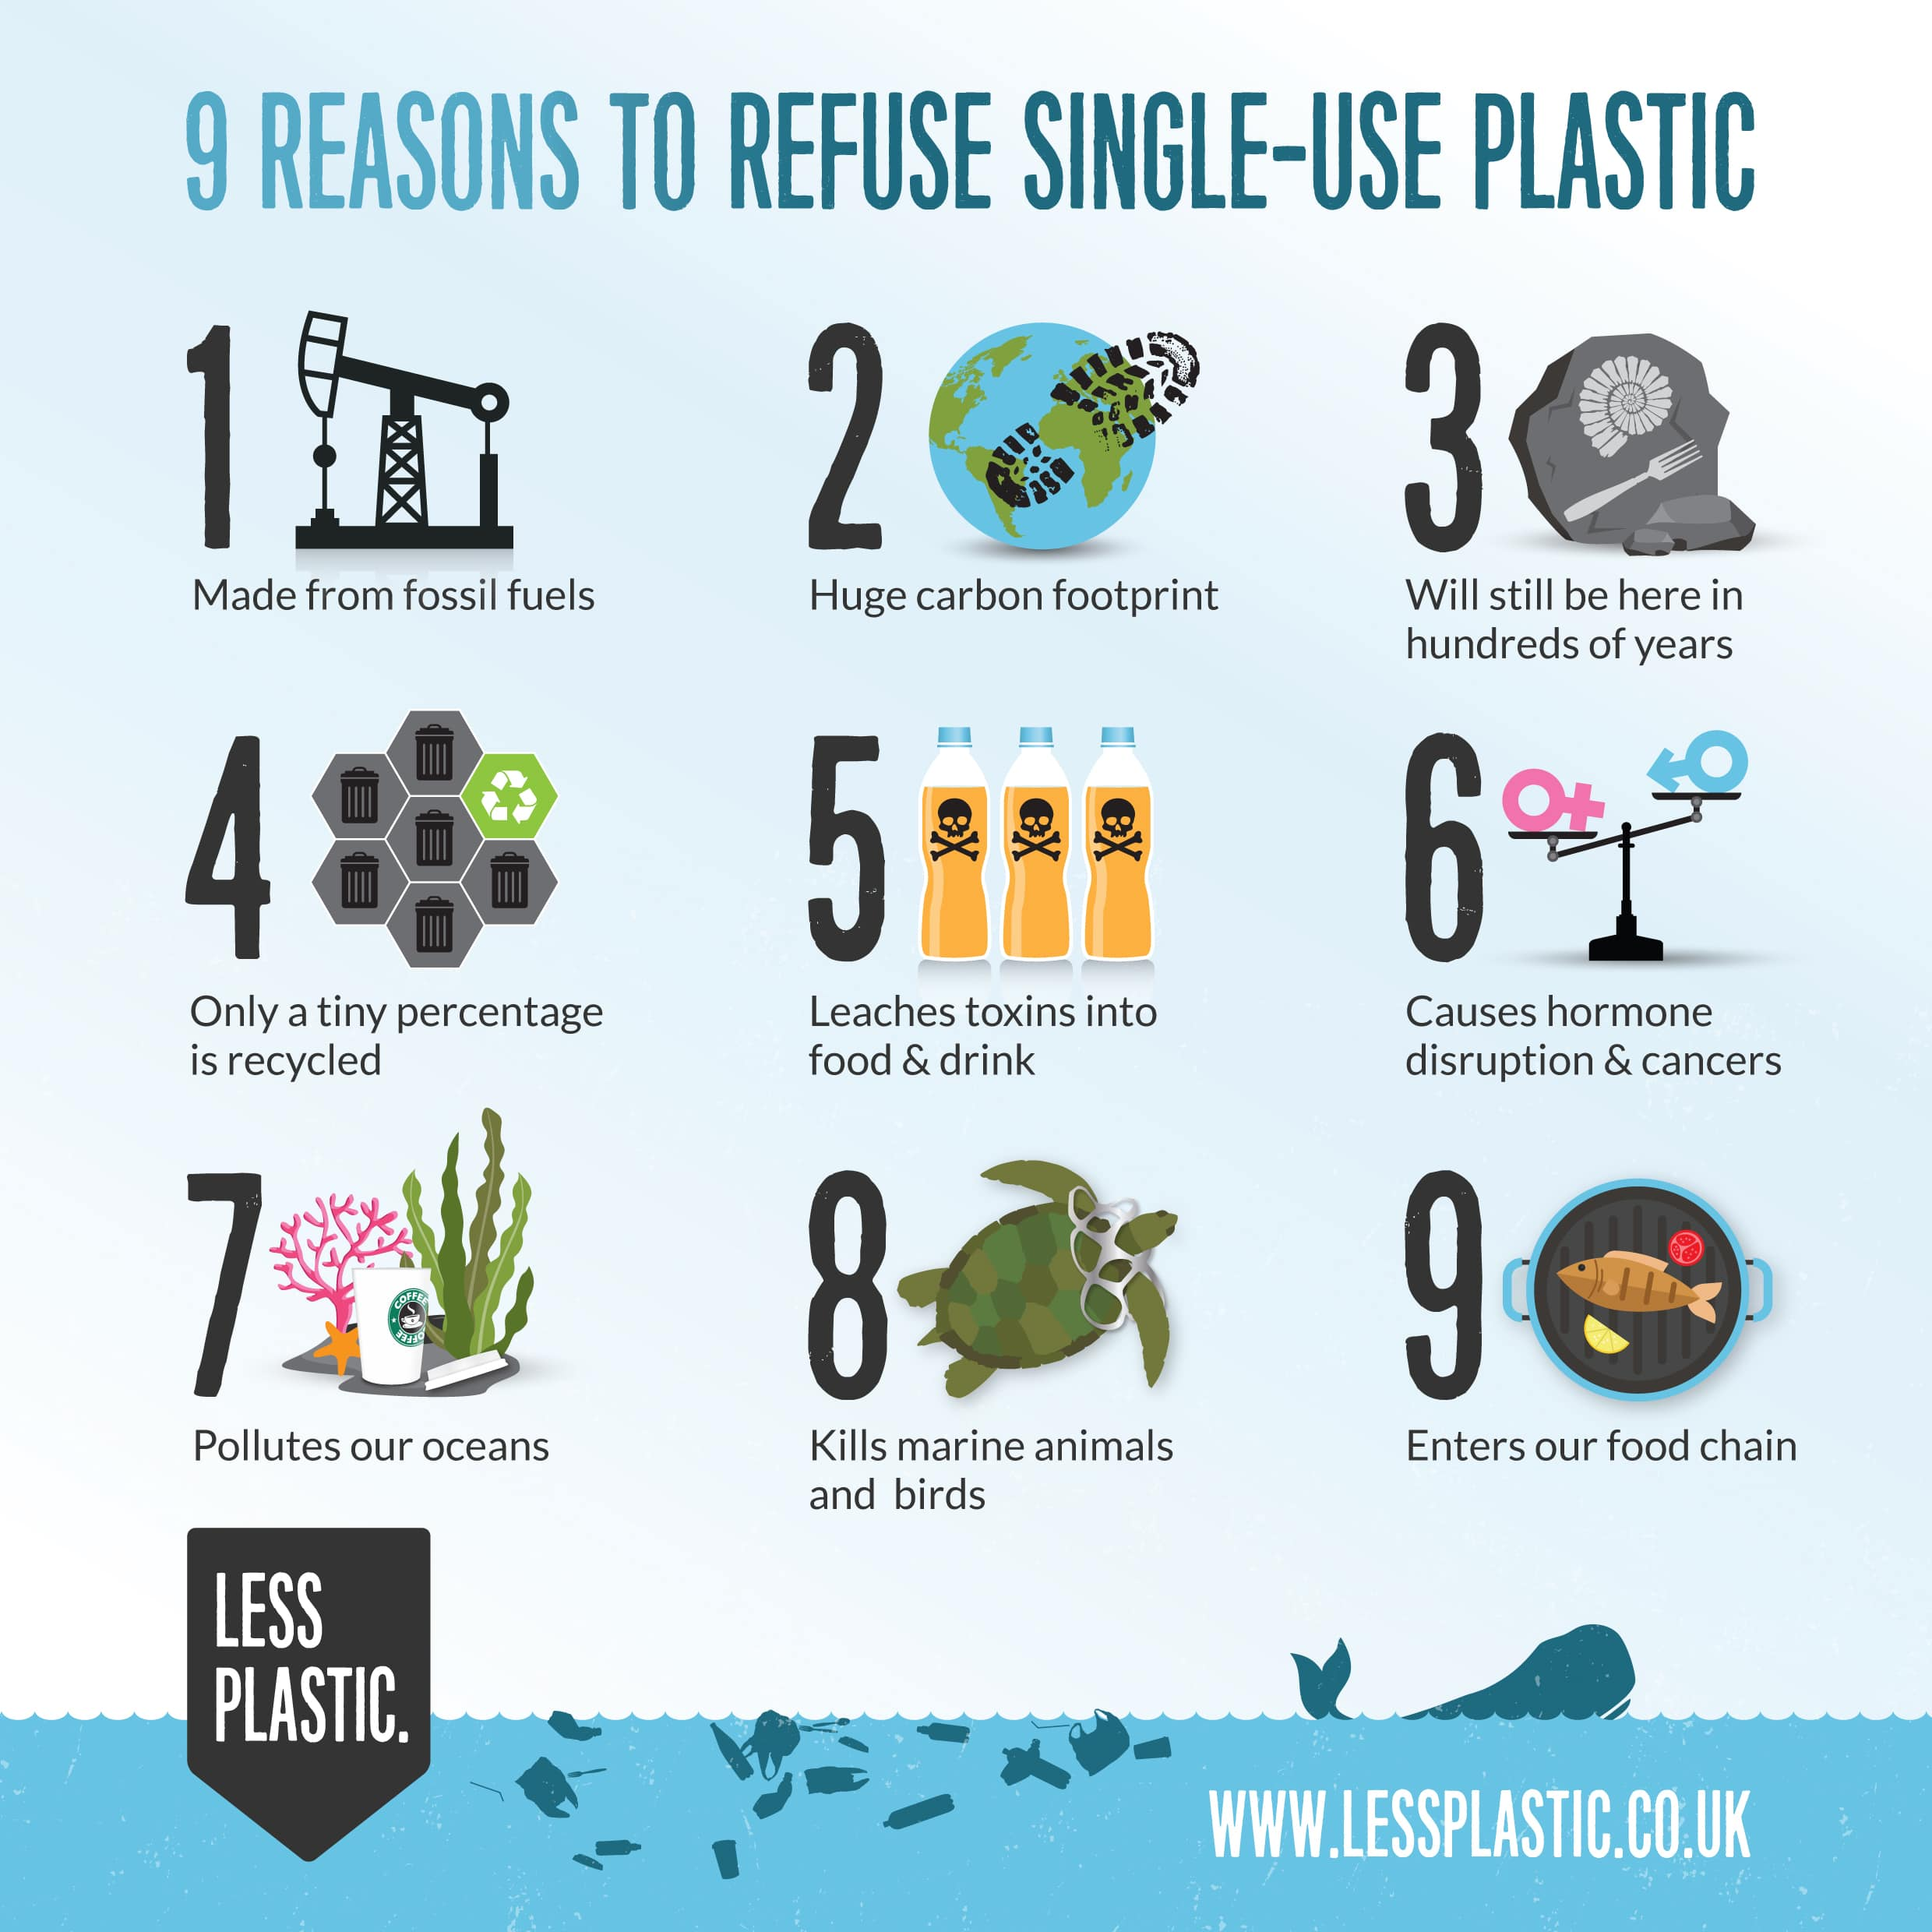 #EarthDay2018, #EndPlasticPollution, #lessplastic, #plasticless #lessplastics Earth Day 2018 End Plastic Pollution Info Graphic Less Plastic